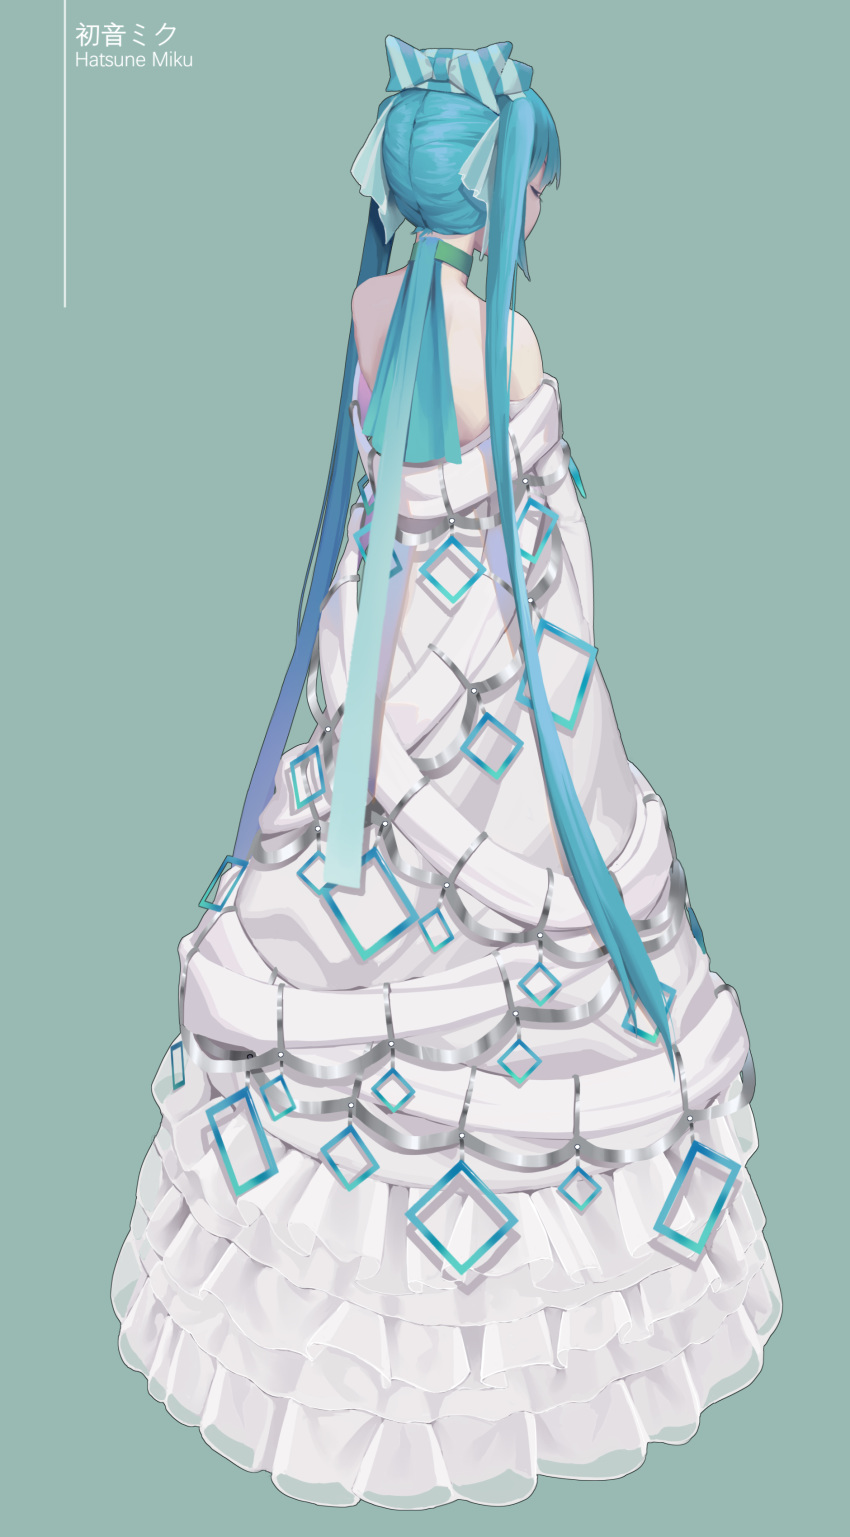 1girl absurdres aqua_bow aqua_hair aqua_ribbon aqua_theme bangs bare_shoulders blue_dress bow character_name chinese_commentary choker christmas closed_eyes commentary_request dress frilled_dress frills from_behind full_body green_background hair_bow hair_ribbon hatsune_miku highres long_hair off-shoulder_dress off_shoulder pekakiu ribbon see-through simple_background solo square standing striped striped_bow twintails very_long_hair vocaloid